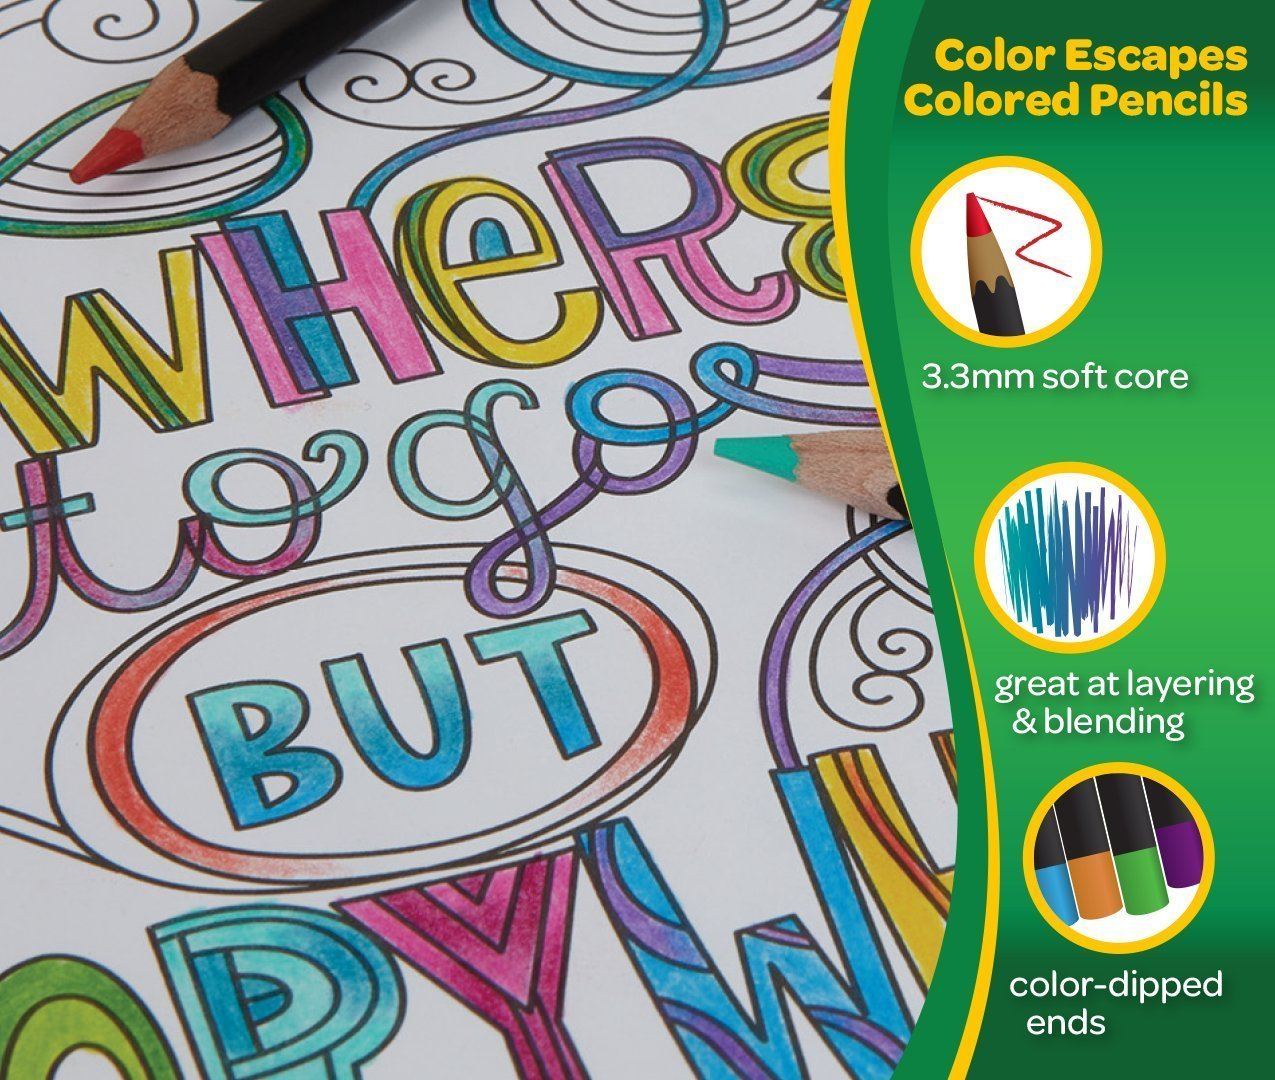 Color Escapes 72 Ct Colored Pencils By Crayola, Great for Adult Coloring. Binney /& Smith 68-1072